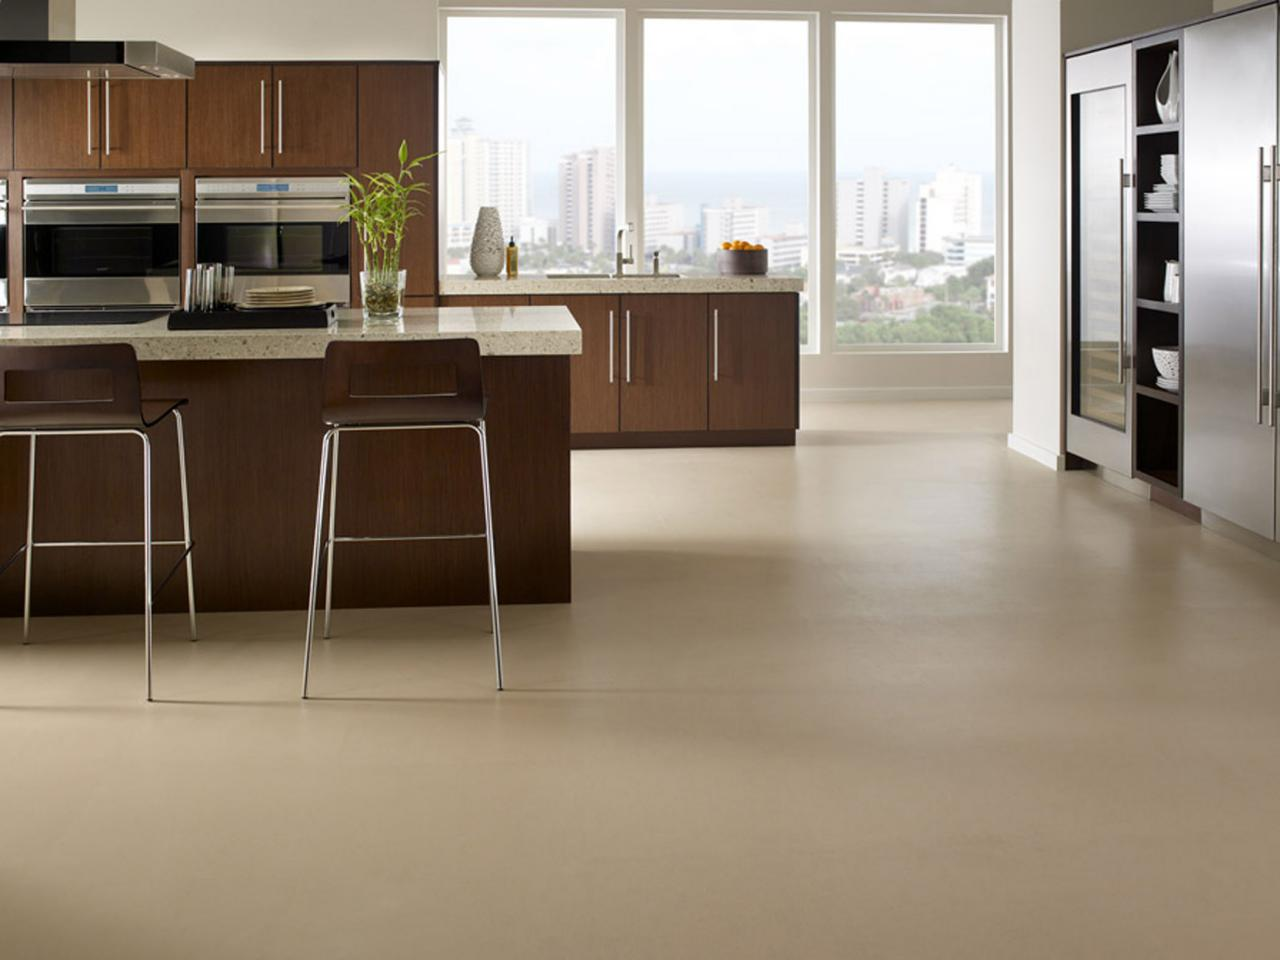 Alternative kitchen floor ideas hgtv alternative kitchen floor ideas dailygadgetfo Gallery